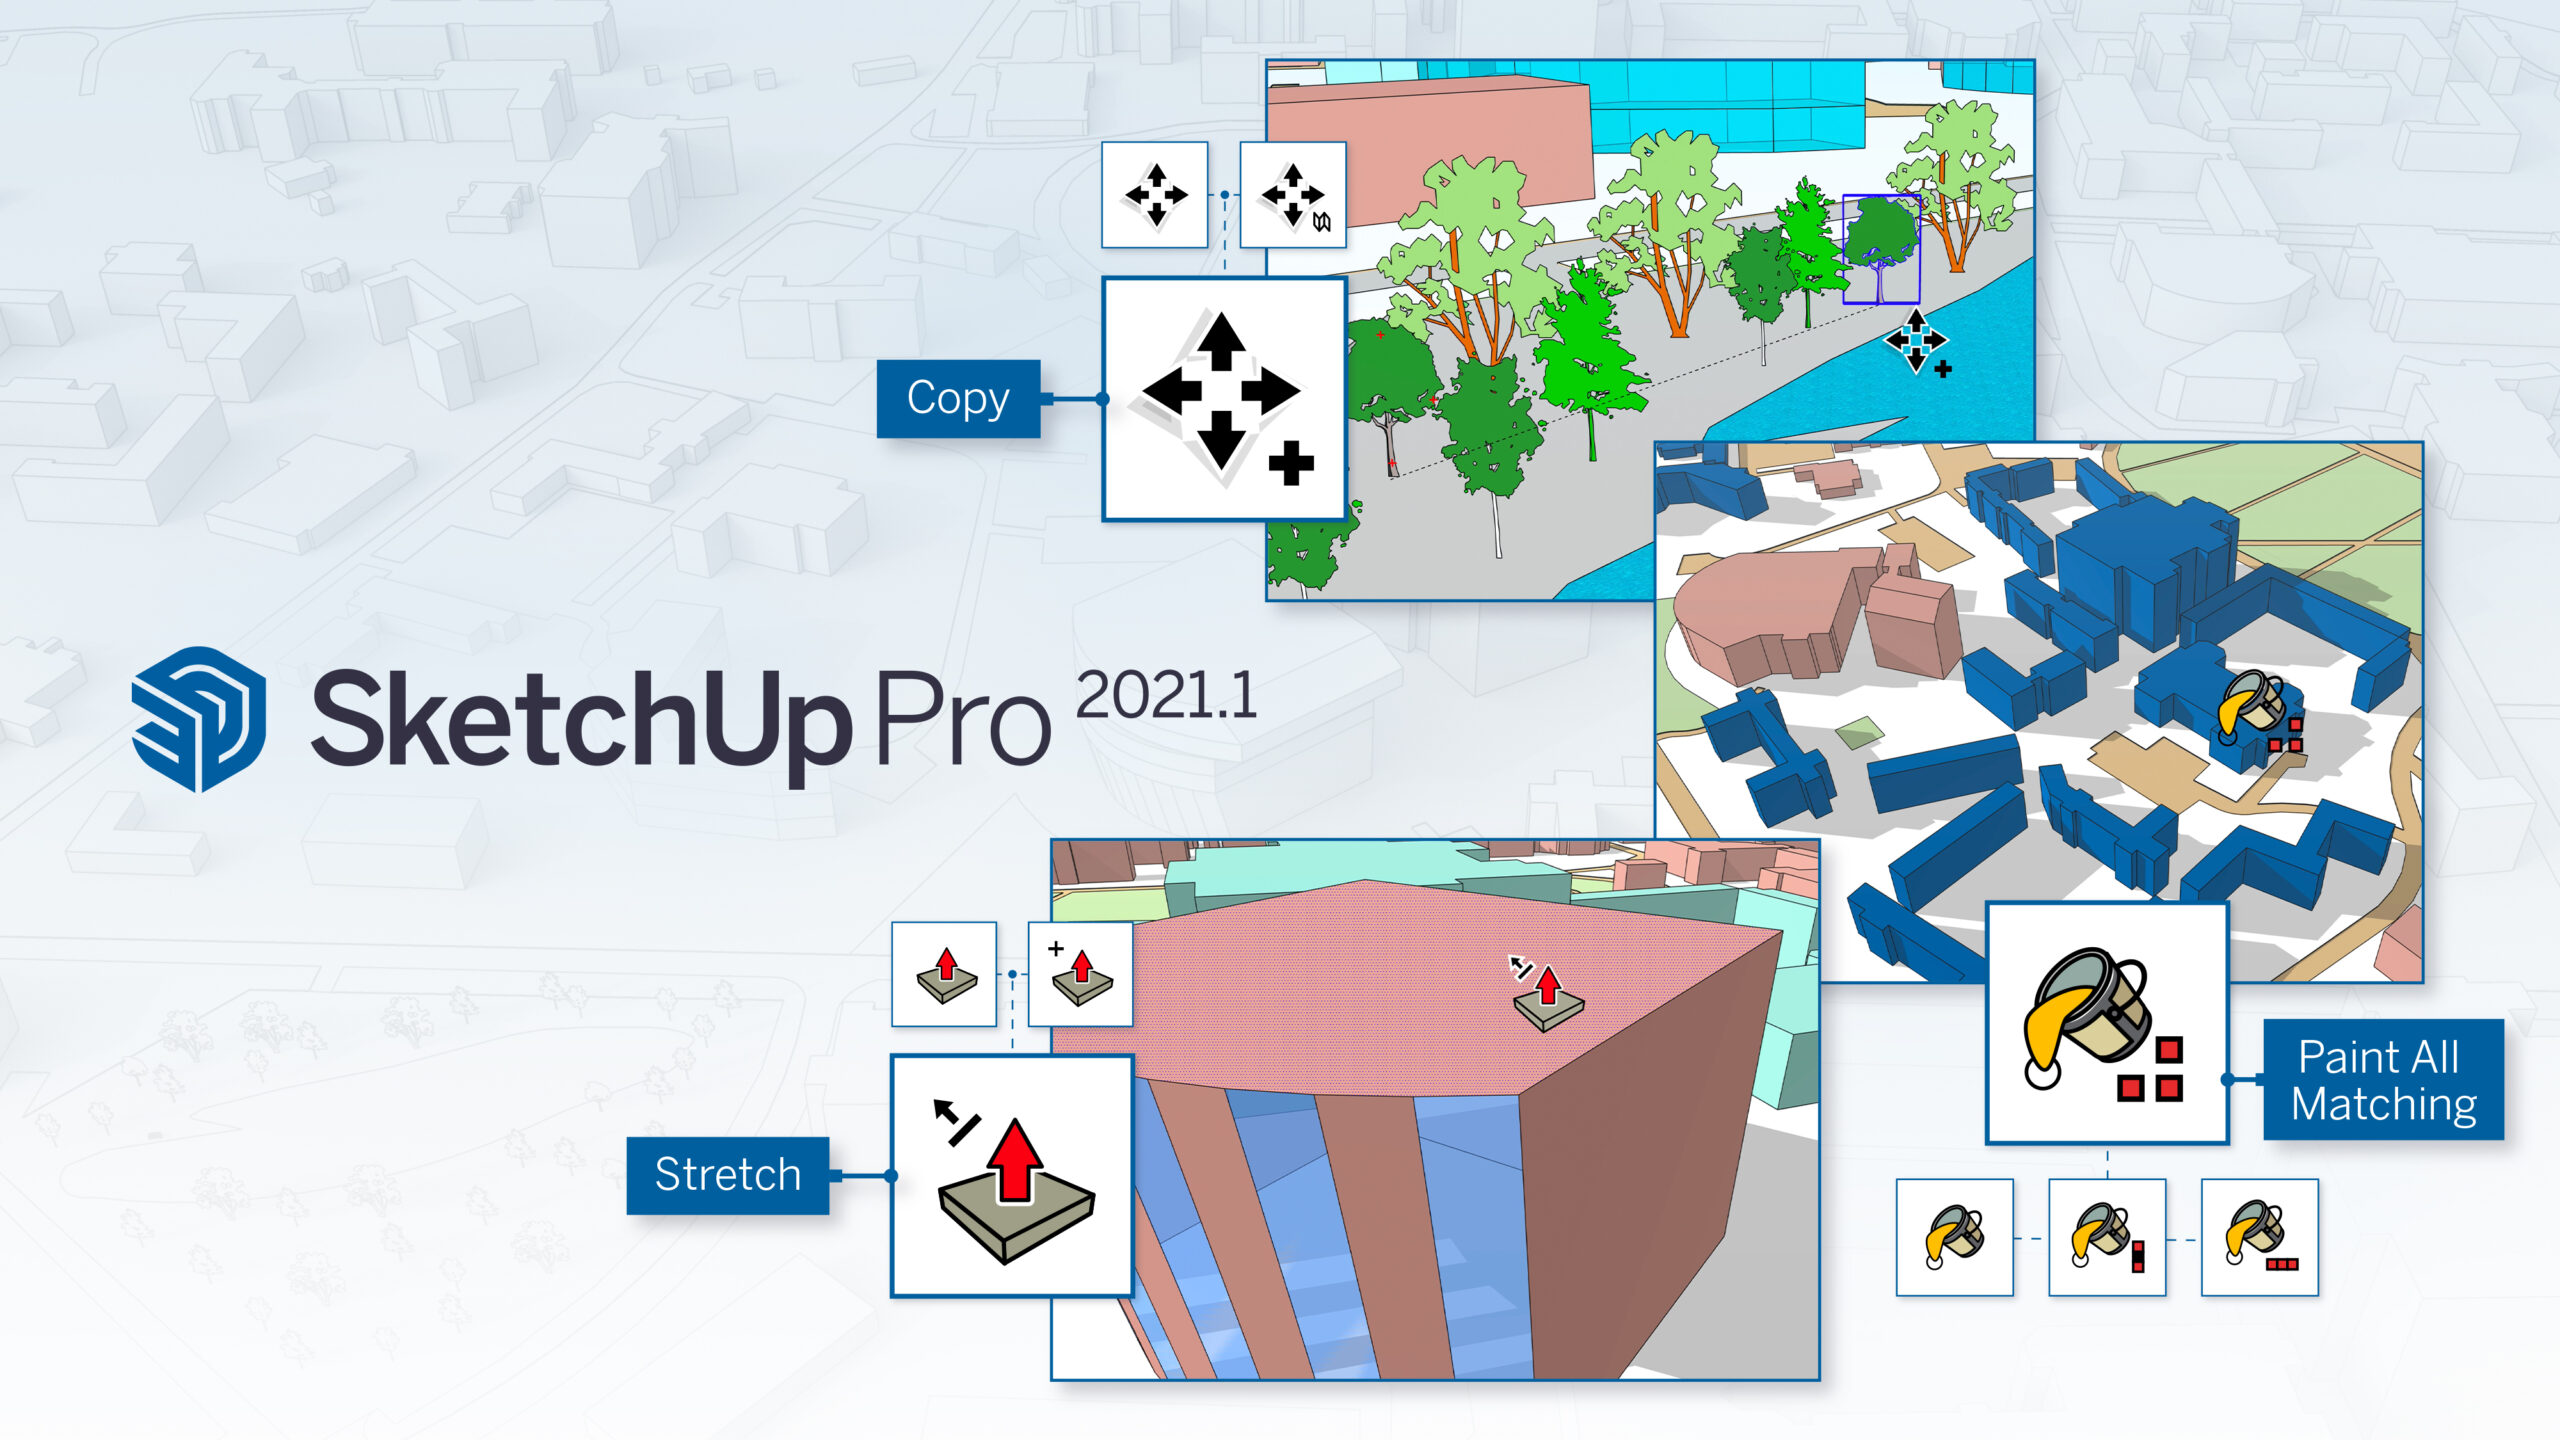 New updates in SketchUp Pro 2021.1